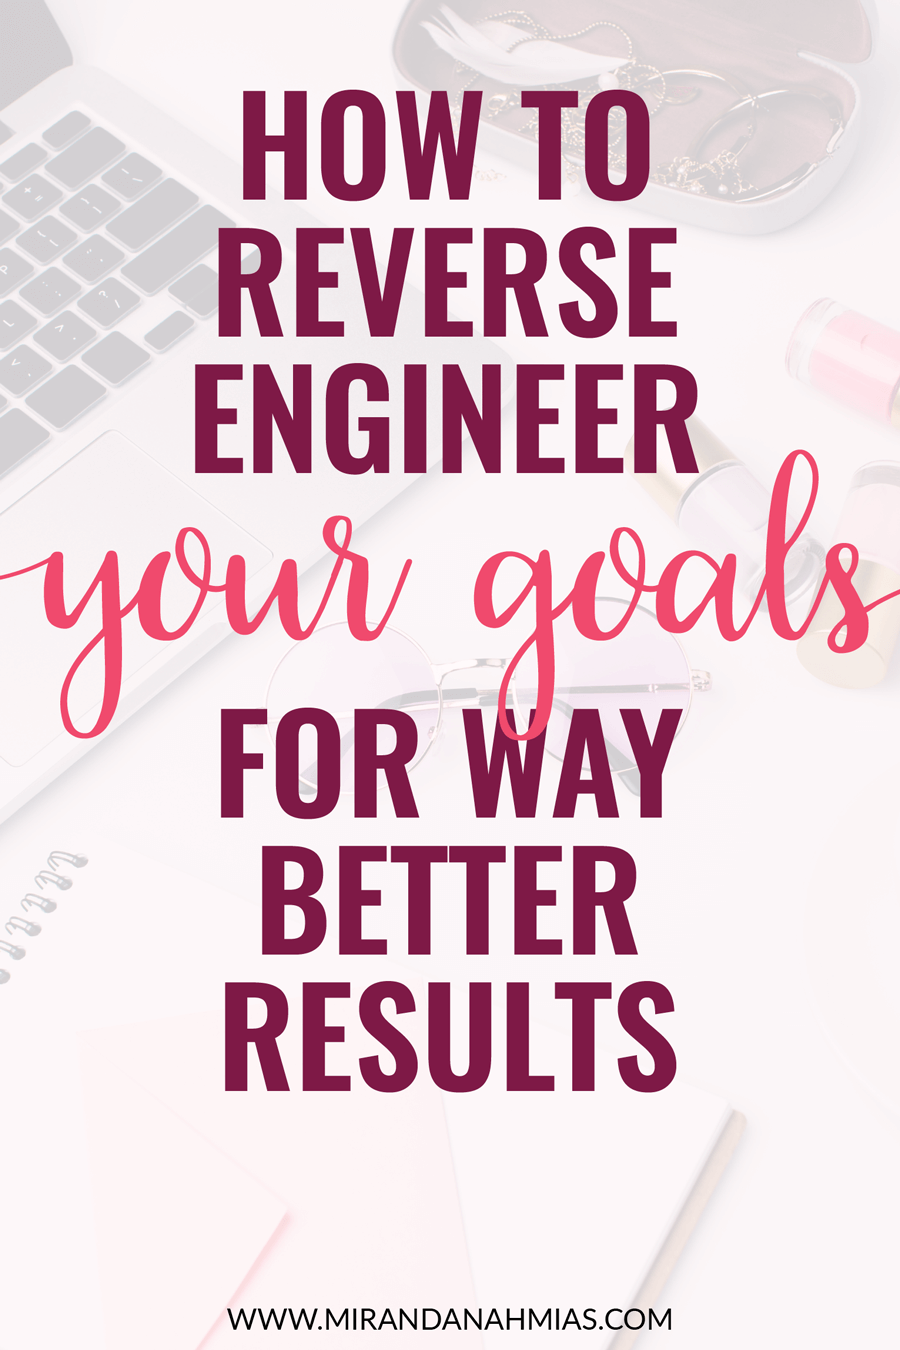 Goals giving you trouble? Slay your goals by reverse-engineering them! Here's how... | Miranda Nahmias & Co. Digital Marketing — Clients, Systems, Marketing